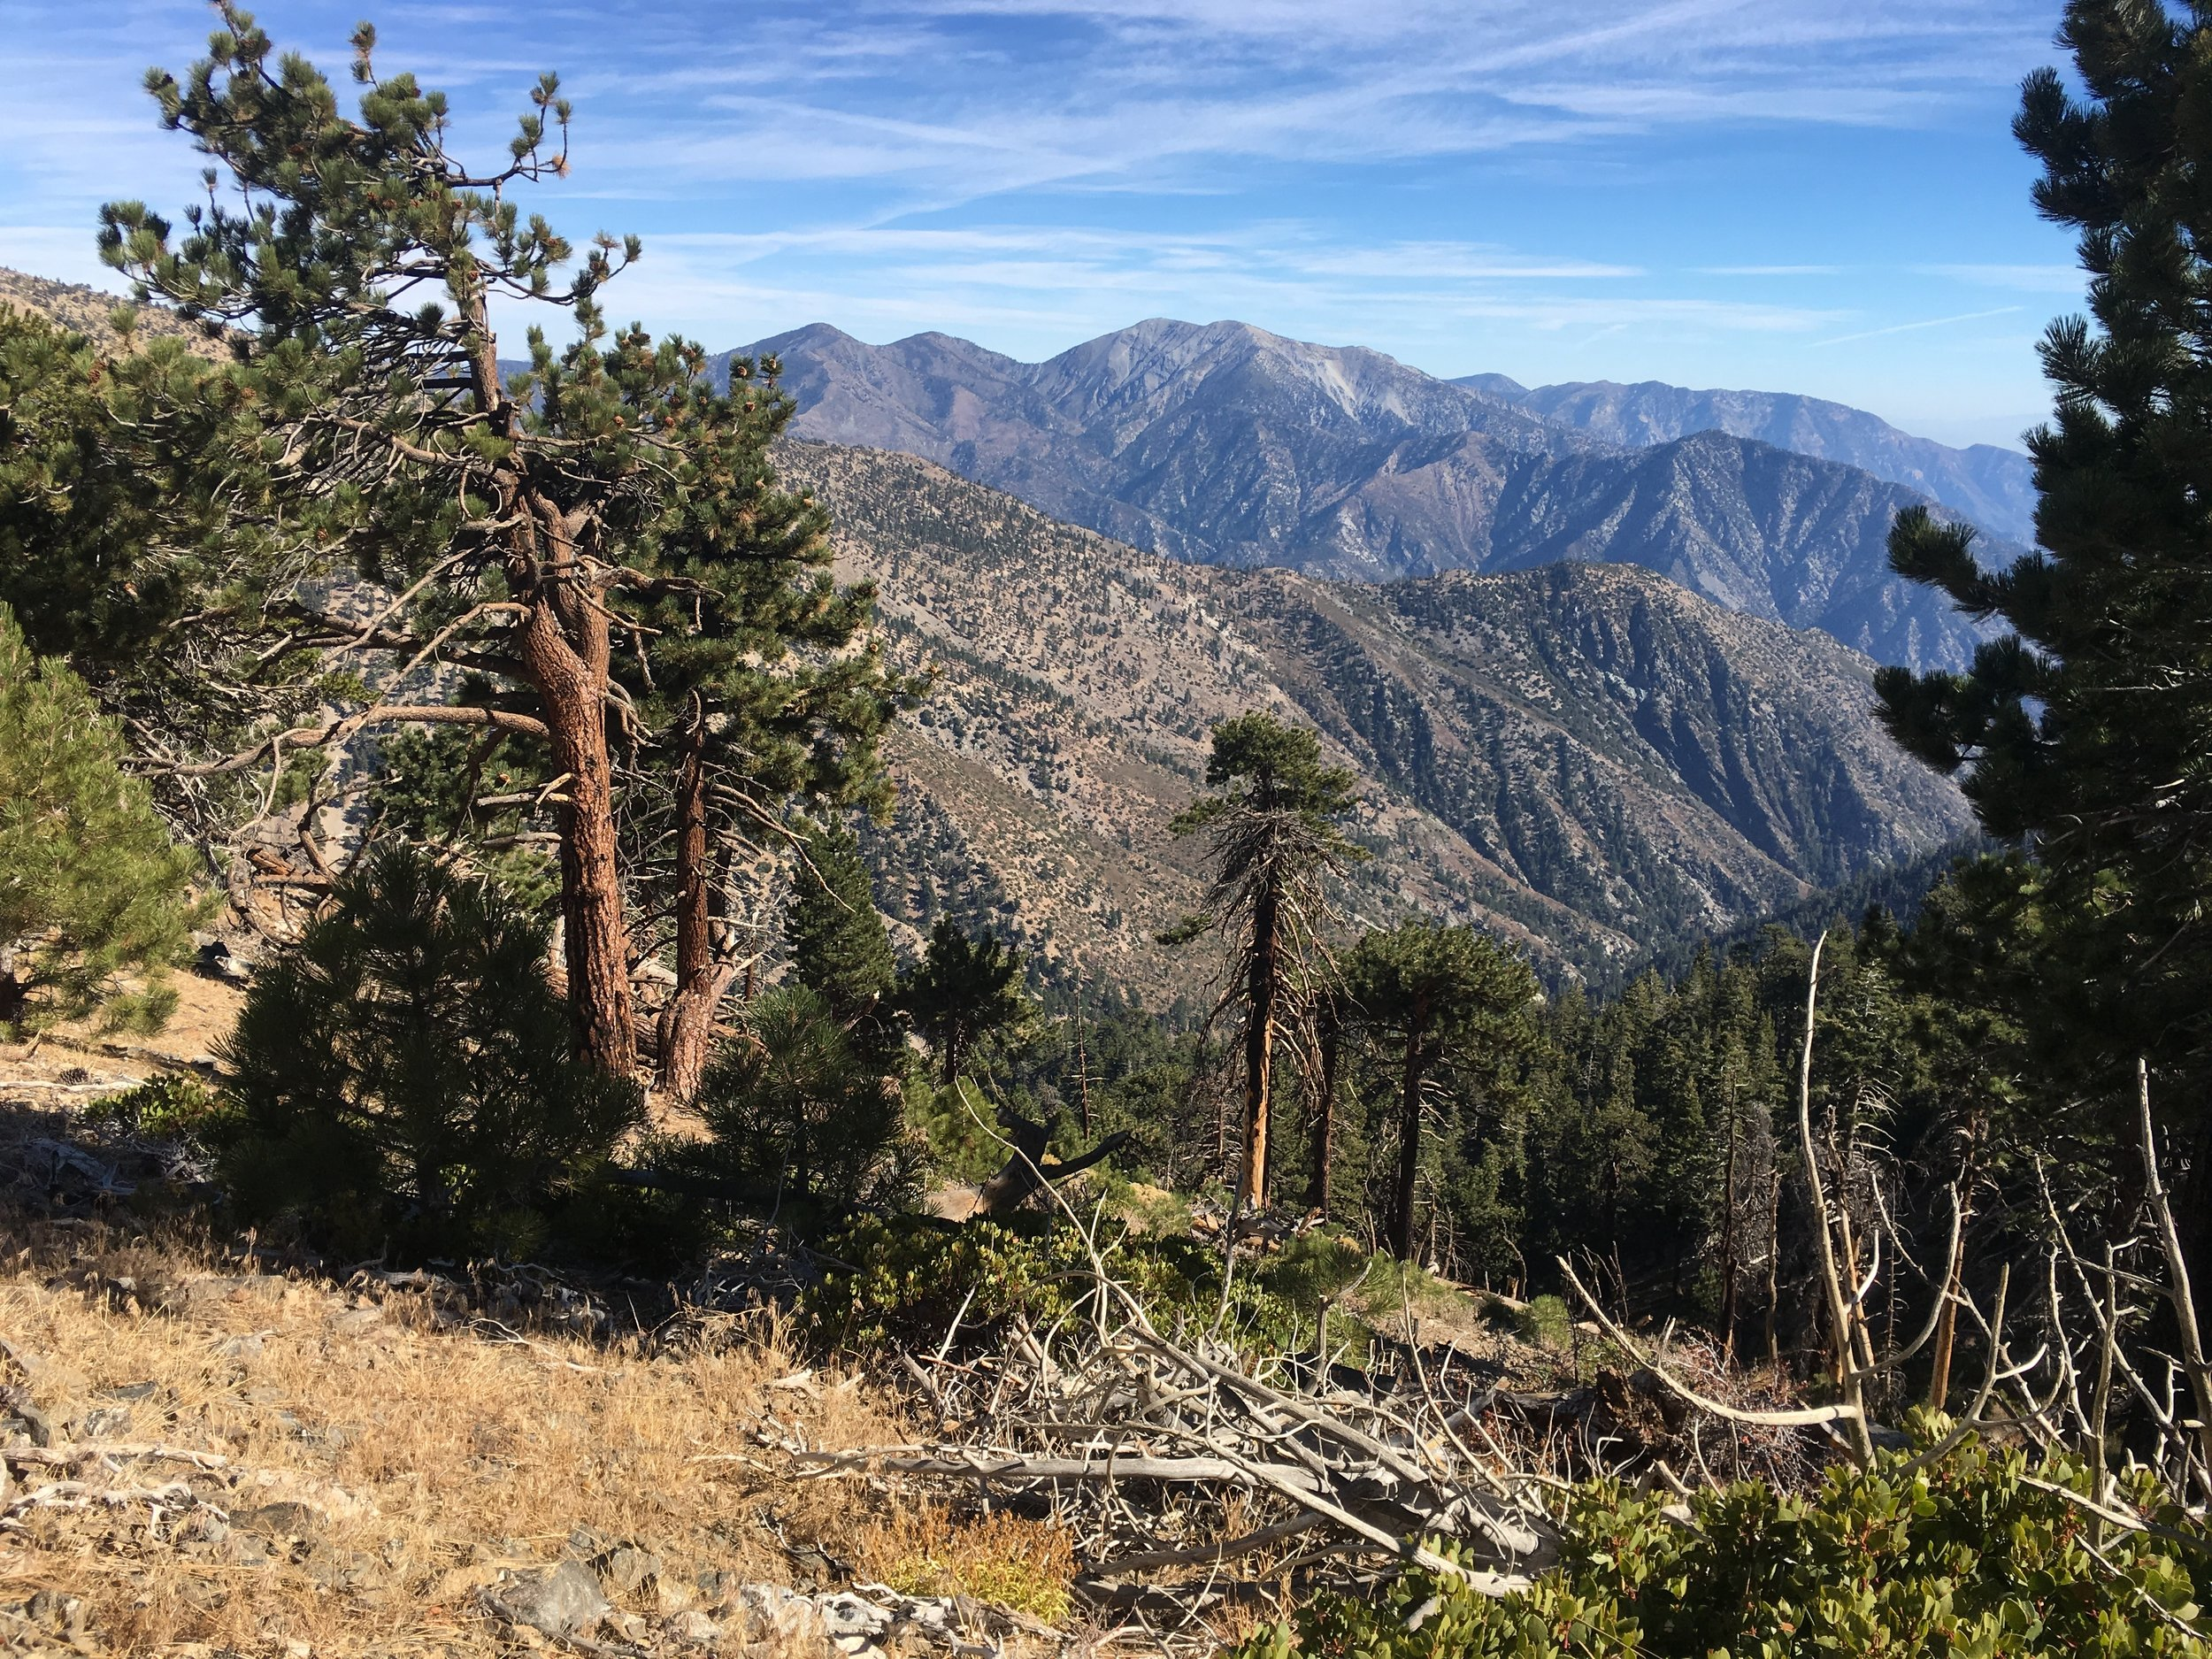 The view of Mt. Baldy and the San Antonio Massif.